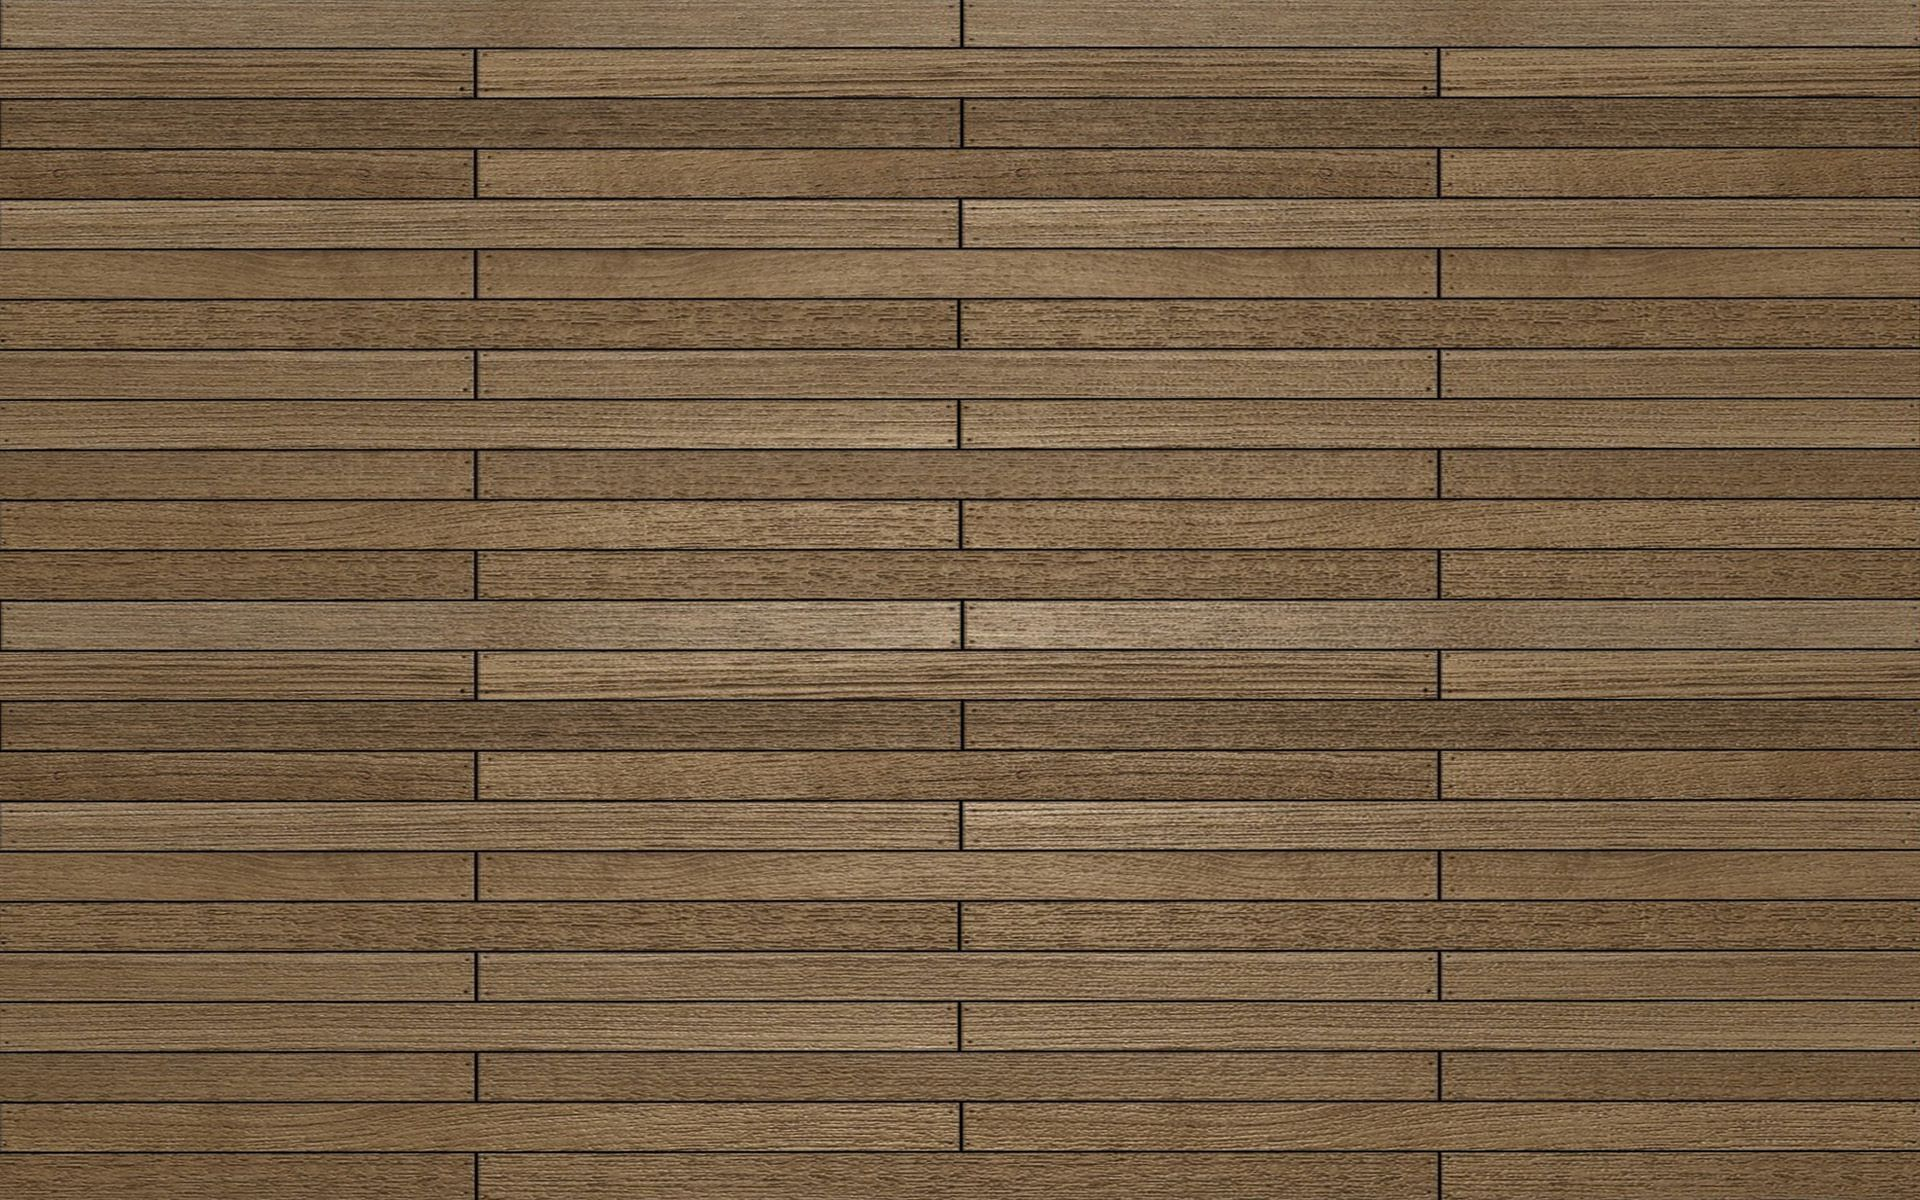 Wood flooring background awesome 31006 material texture for Hardwood decking planks